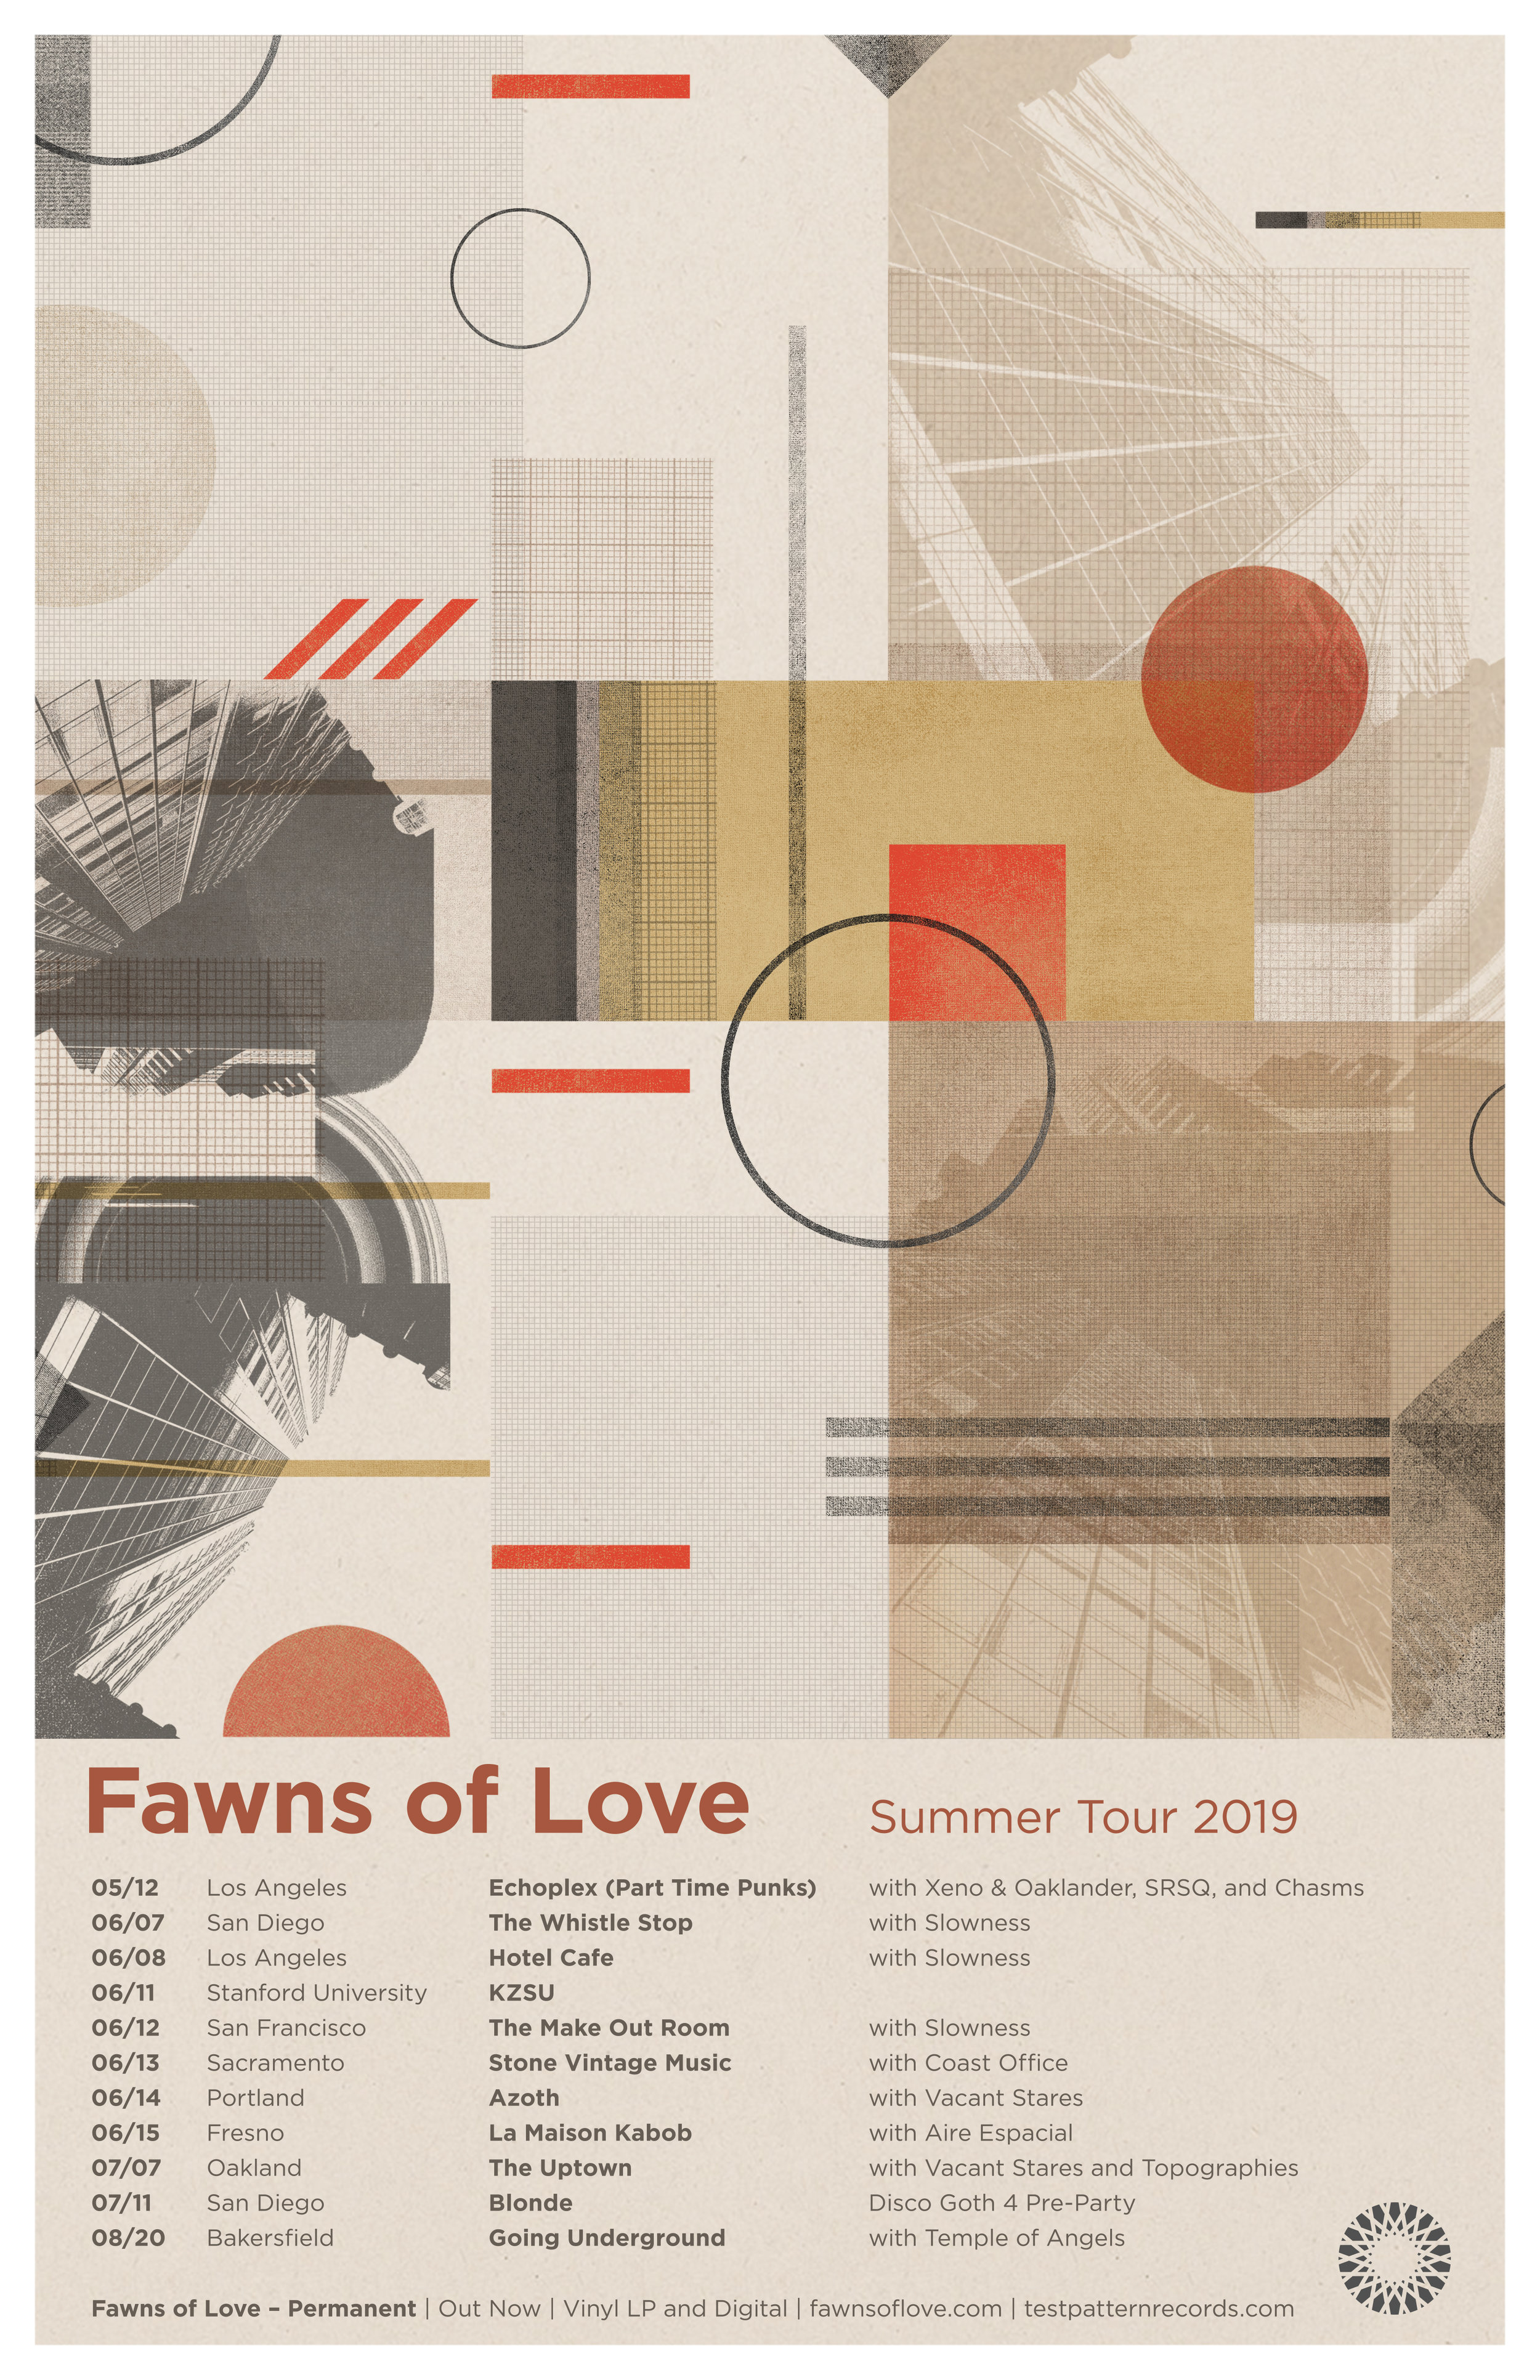 Fawns_Of_Love_SummerTour_2019_Web_Revised.jpg